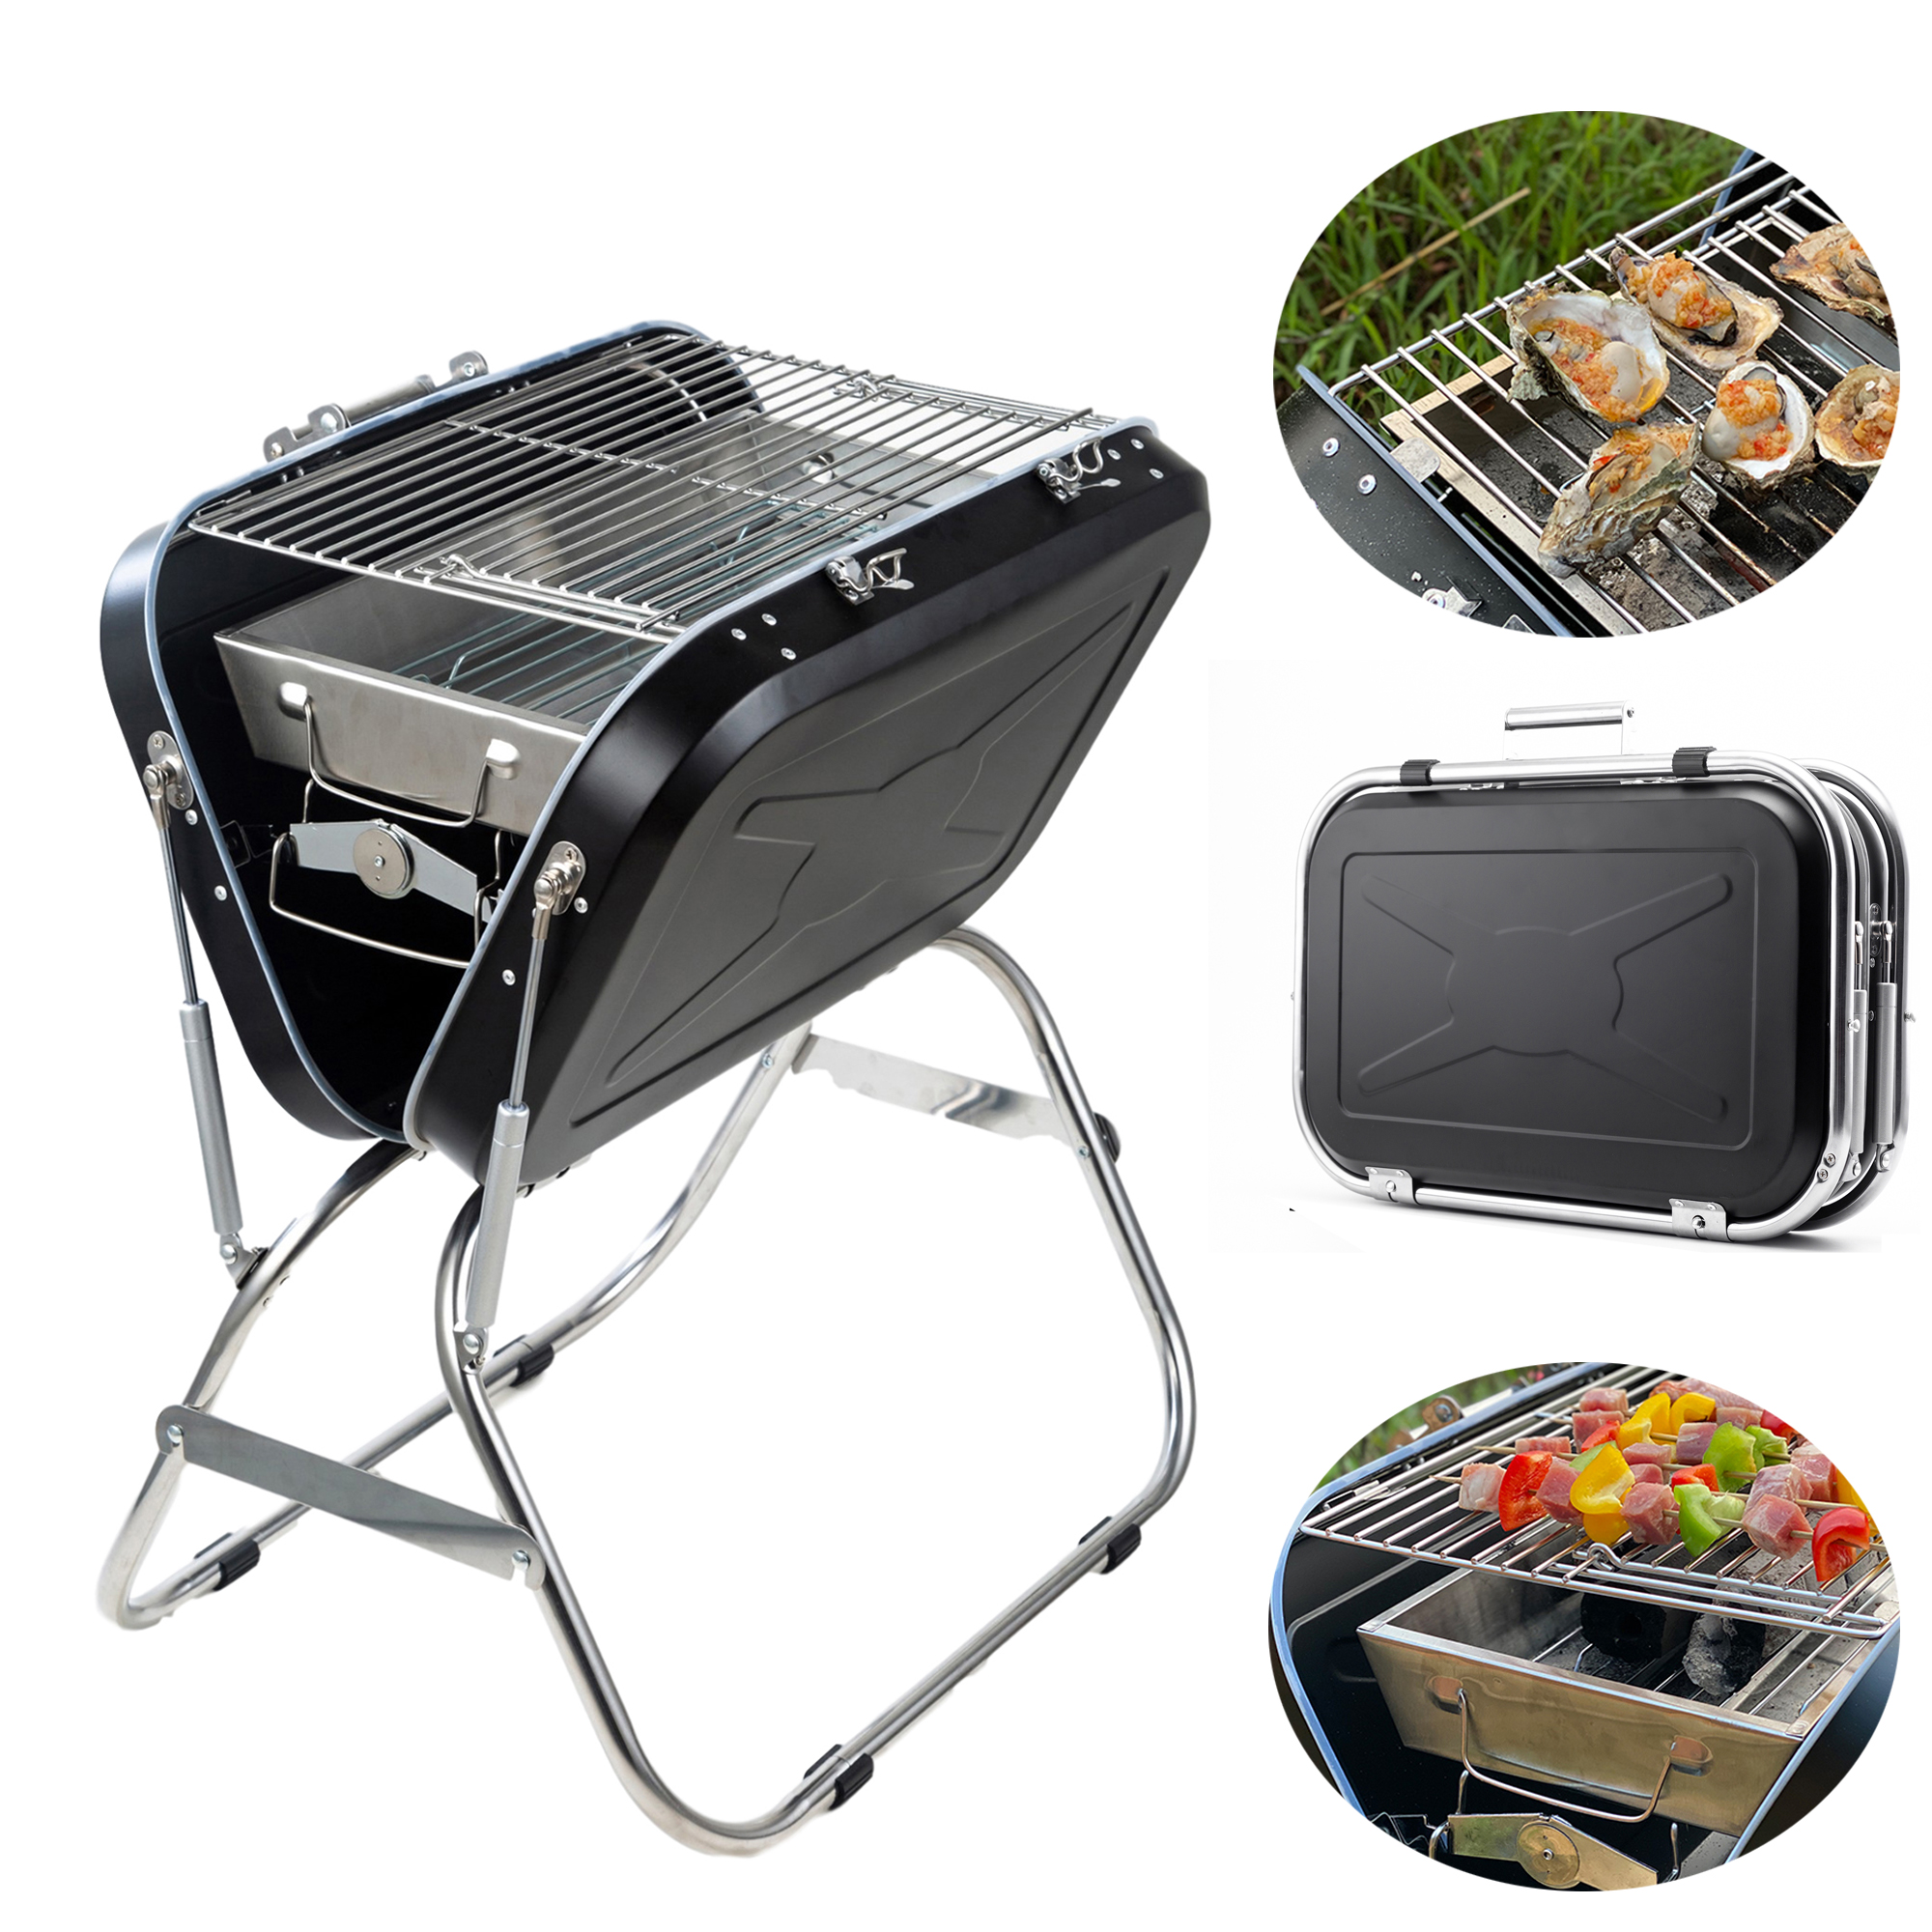 Portable Outdoor Bbq Grill Charcoal Barbecue Smoker Meat Cooker Patio Camping Us Ebay